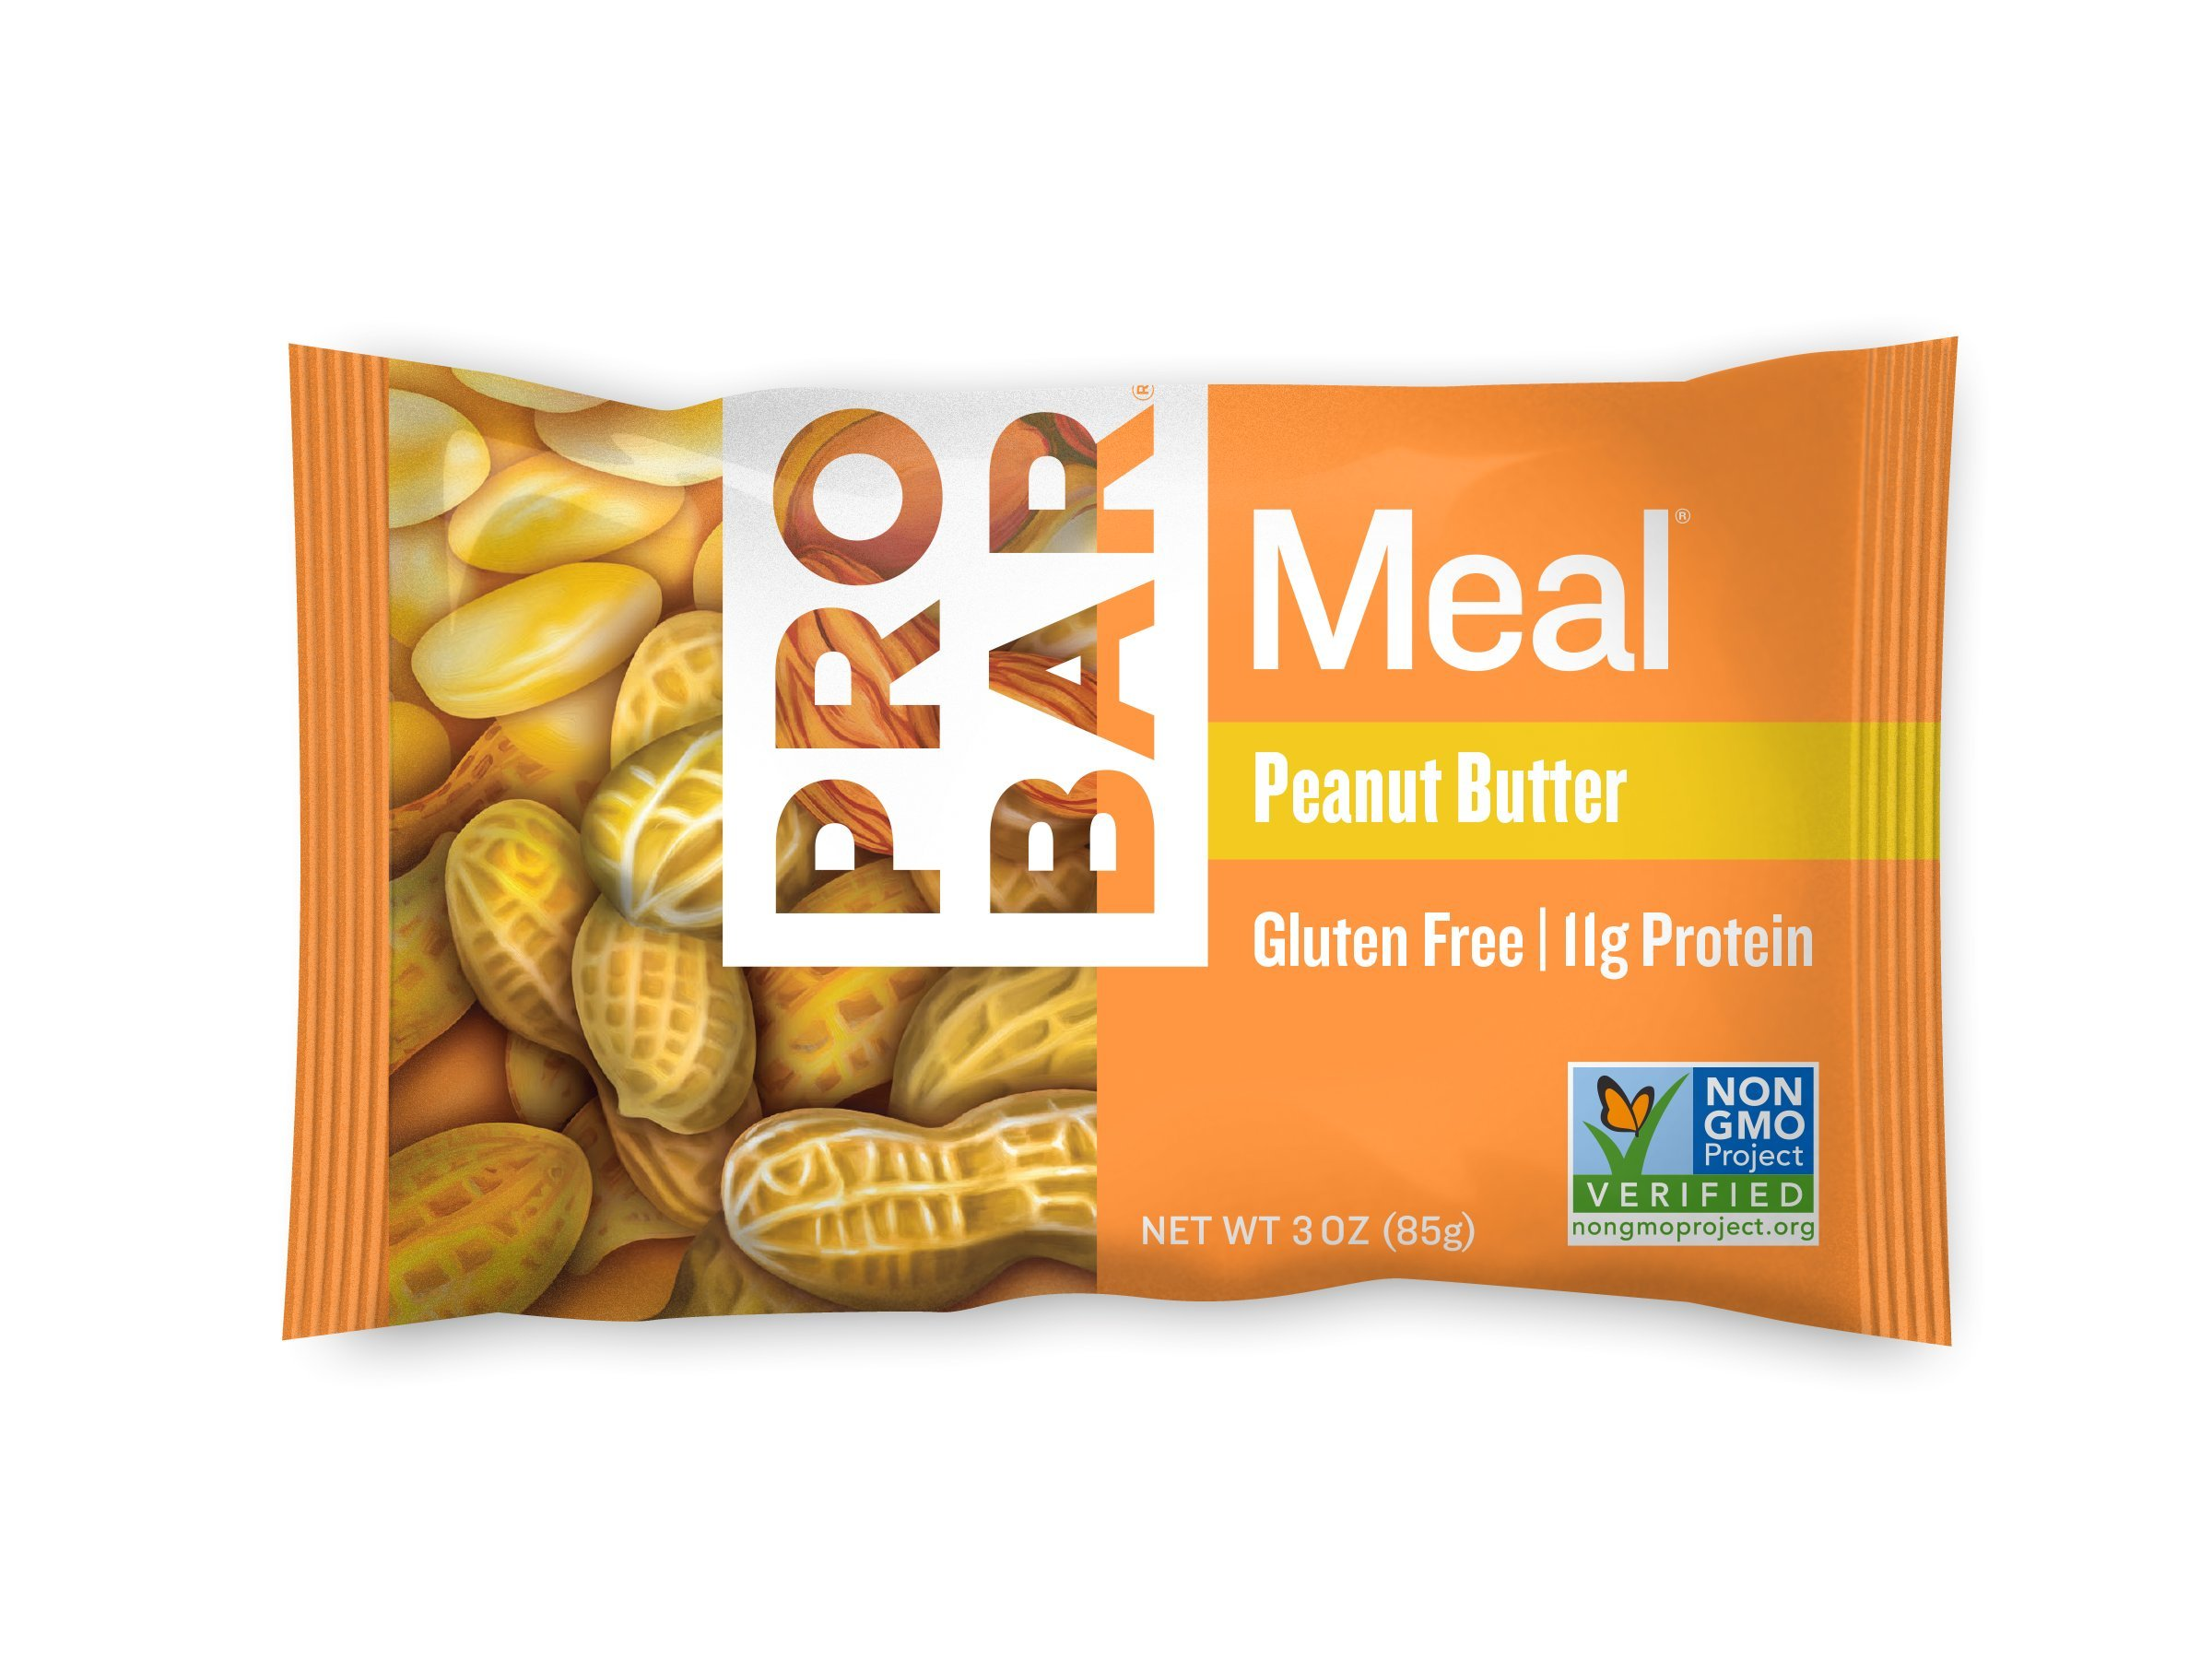 PROBAR - Meal Bar, Peanut Butter, 3 Oz, 12 Count - Plant-Based Whole Food Ingredients by Probar